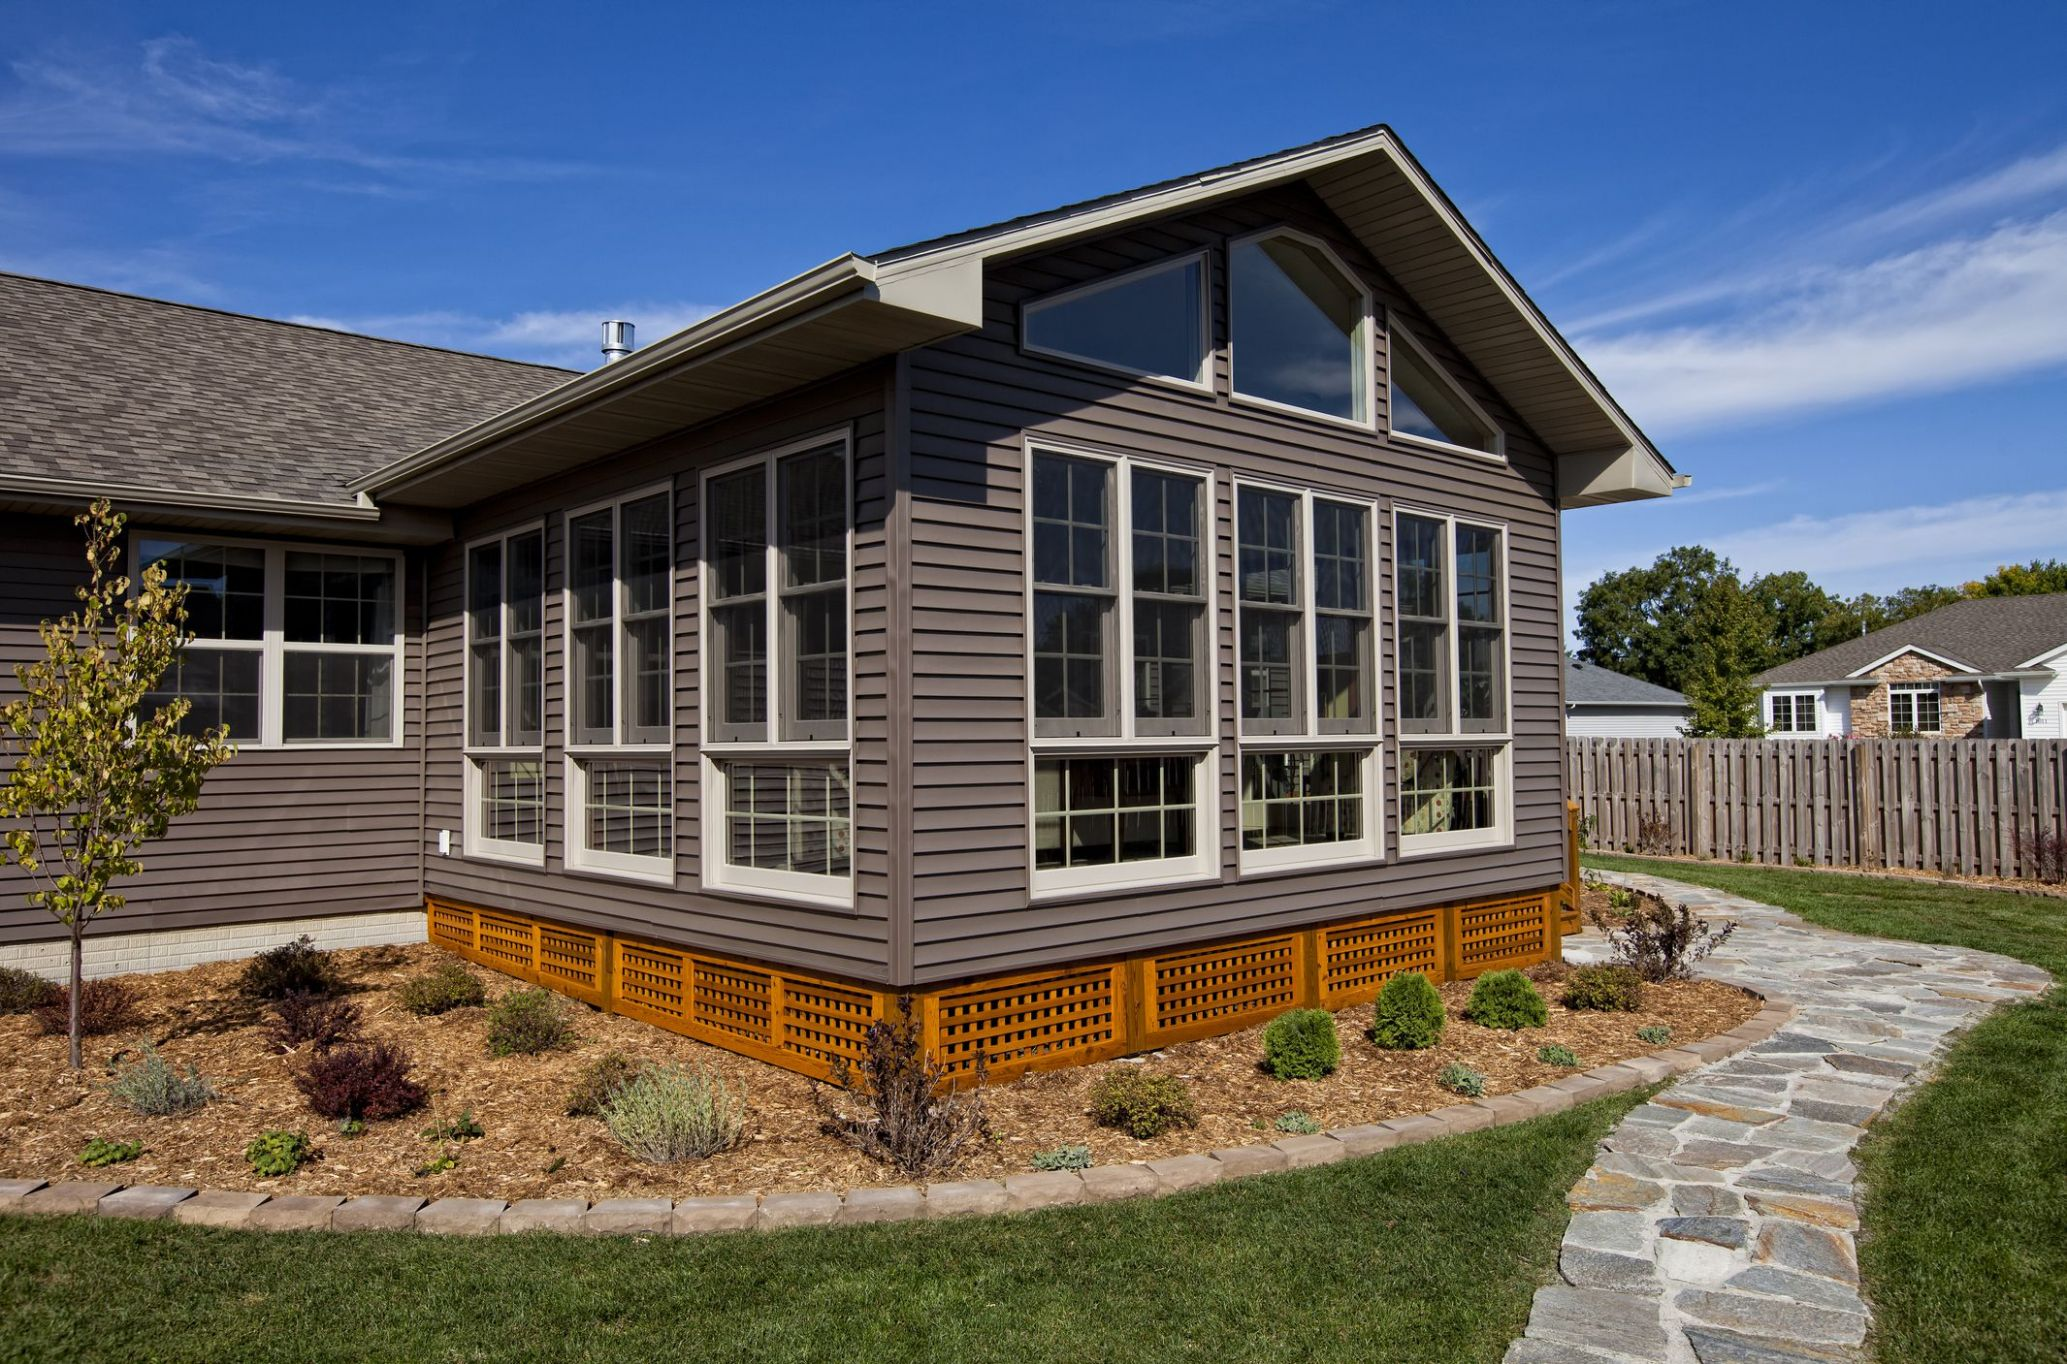 Outdoor Sunroom Ideas: What to Know Before You Build - sunroom roof ideas